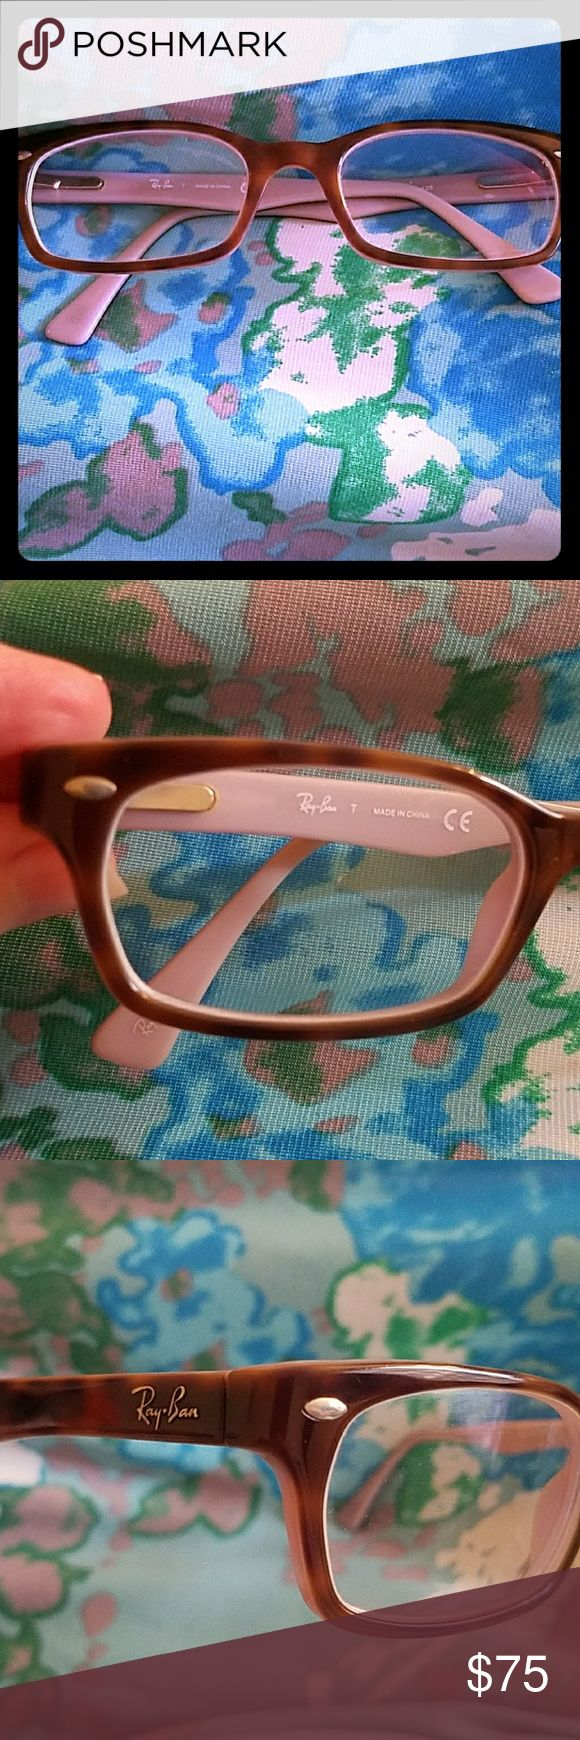 EUC Ray-Ban Prescription Glasses Frames These do have lenses in them so you'd need to insert your own. I got lots of compliments on these. Make me an offer! Tortoise outside, lilac inside. Ray-Ban Accessories Glasses